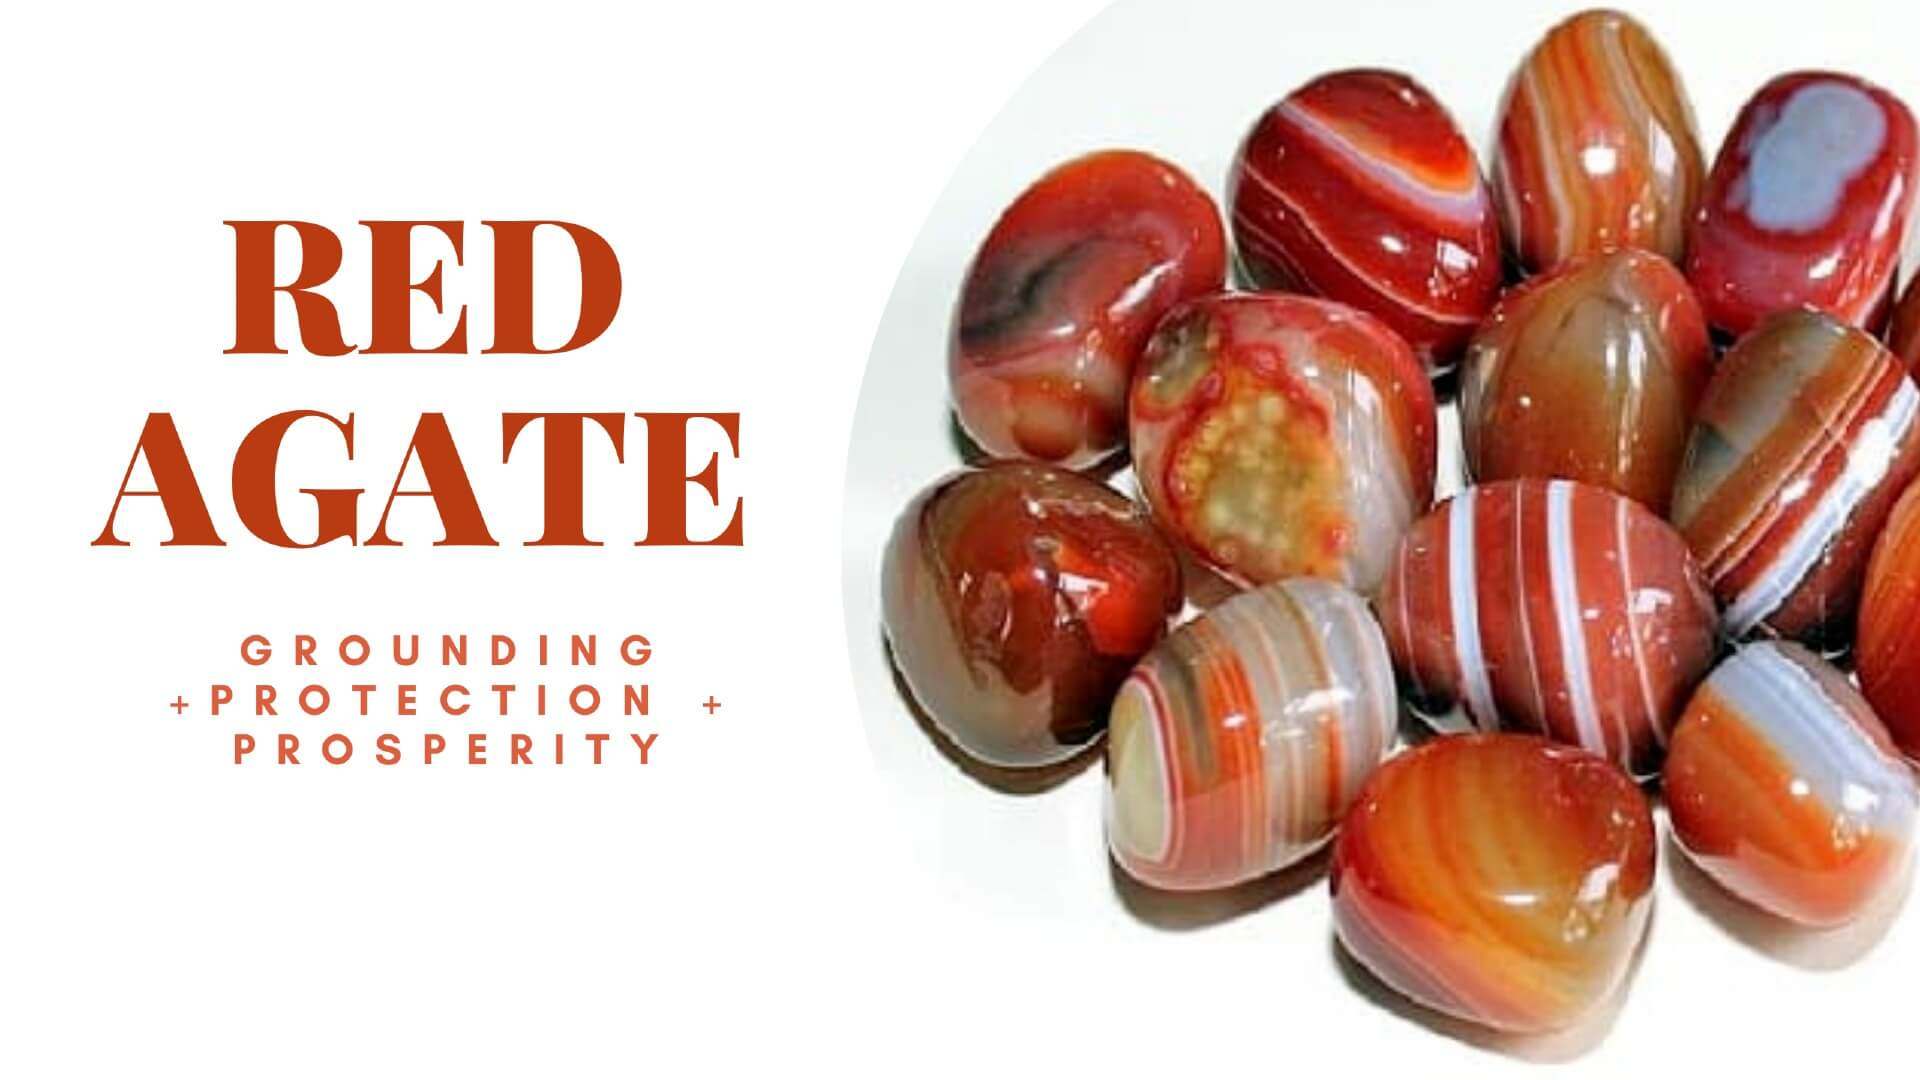 Red Agate Healing Properties | Red Agate Meaning | Benefits Of Red Agate - Magic Crystals